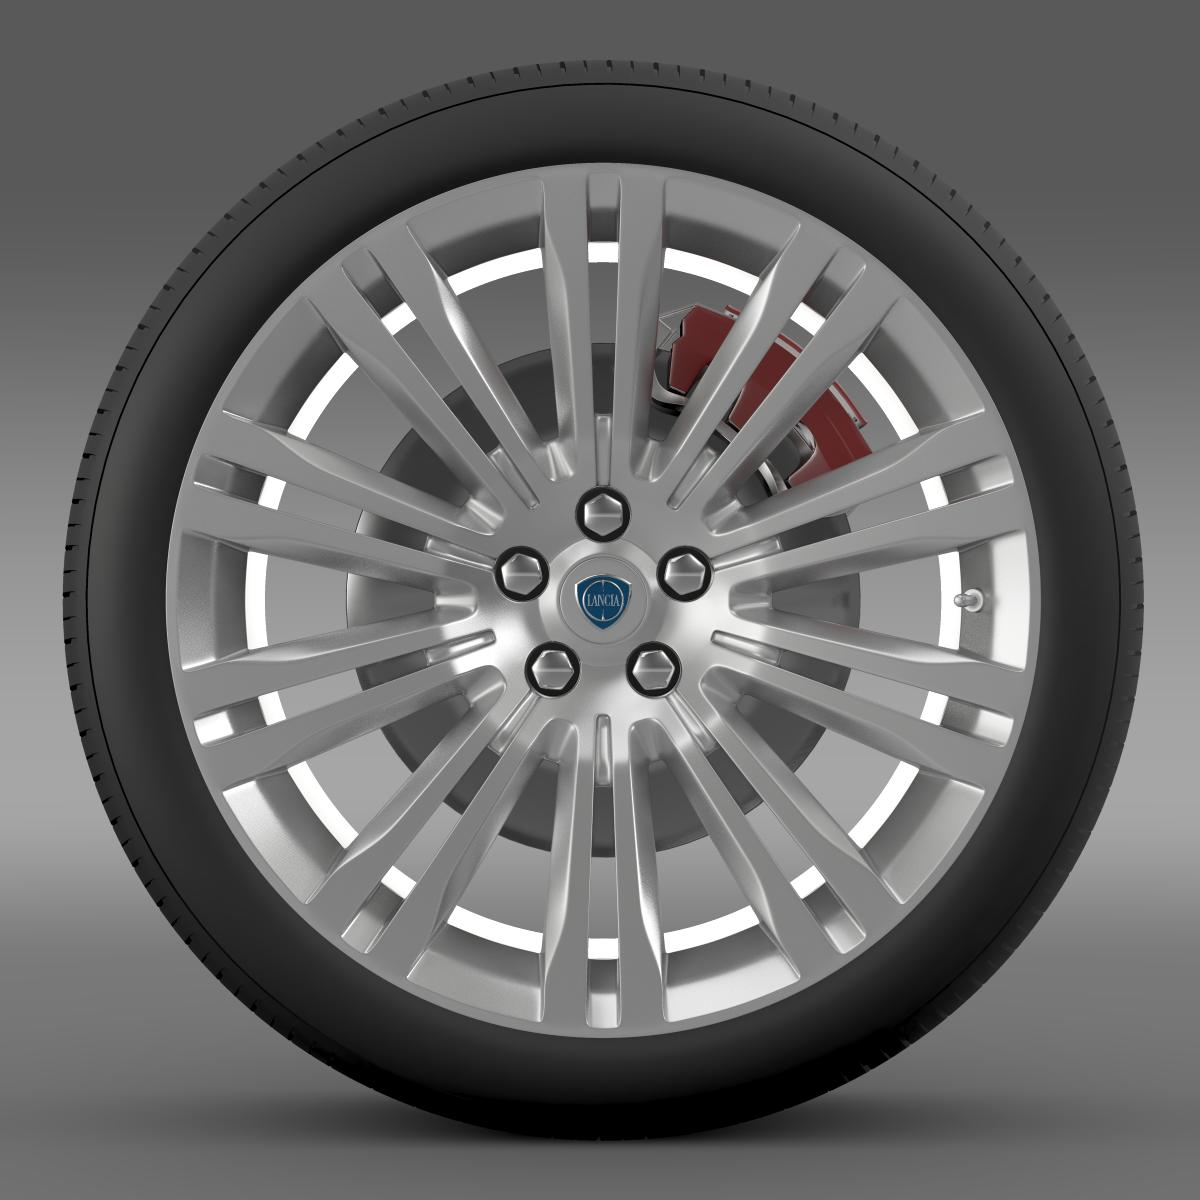 lancia thema 2014 wheel 3d model 3ds max fbx c4d lwo ma mb hrc xsi obj 210729